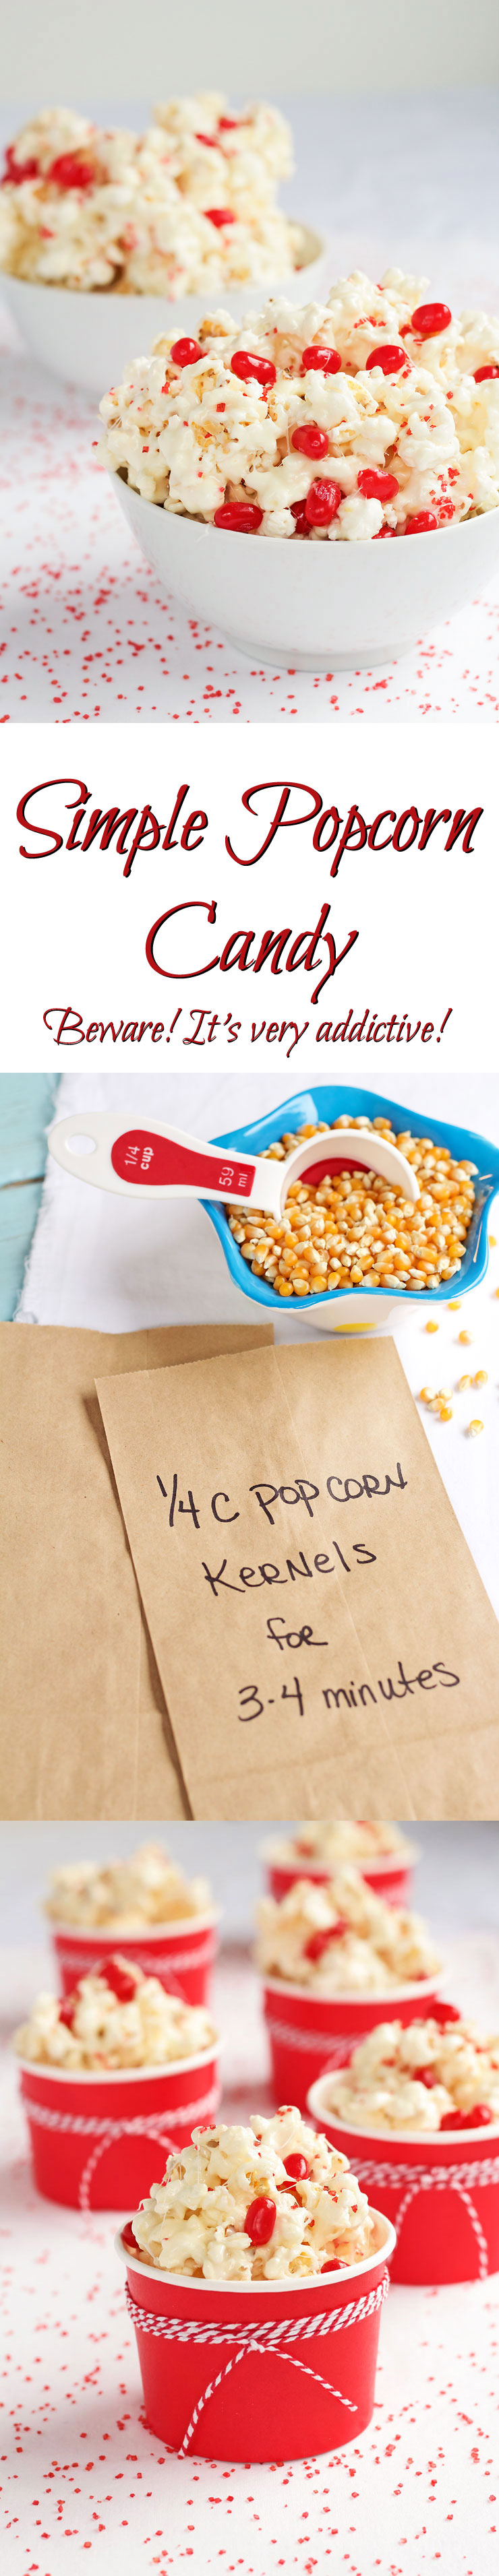 Popcorn Candy Recipe - This stuff is so addictive it should really come with a warning label! www thebearfootbaker.com